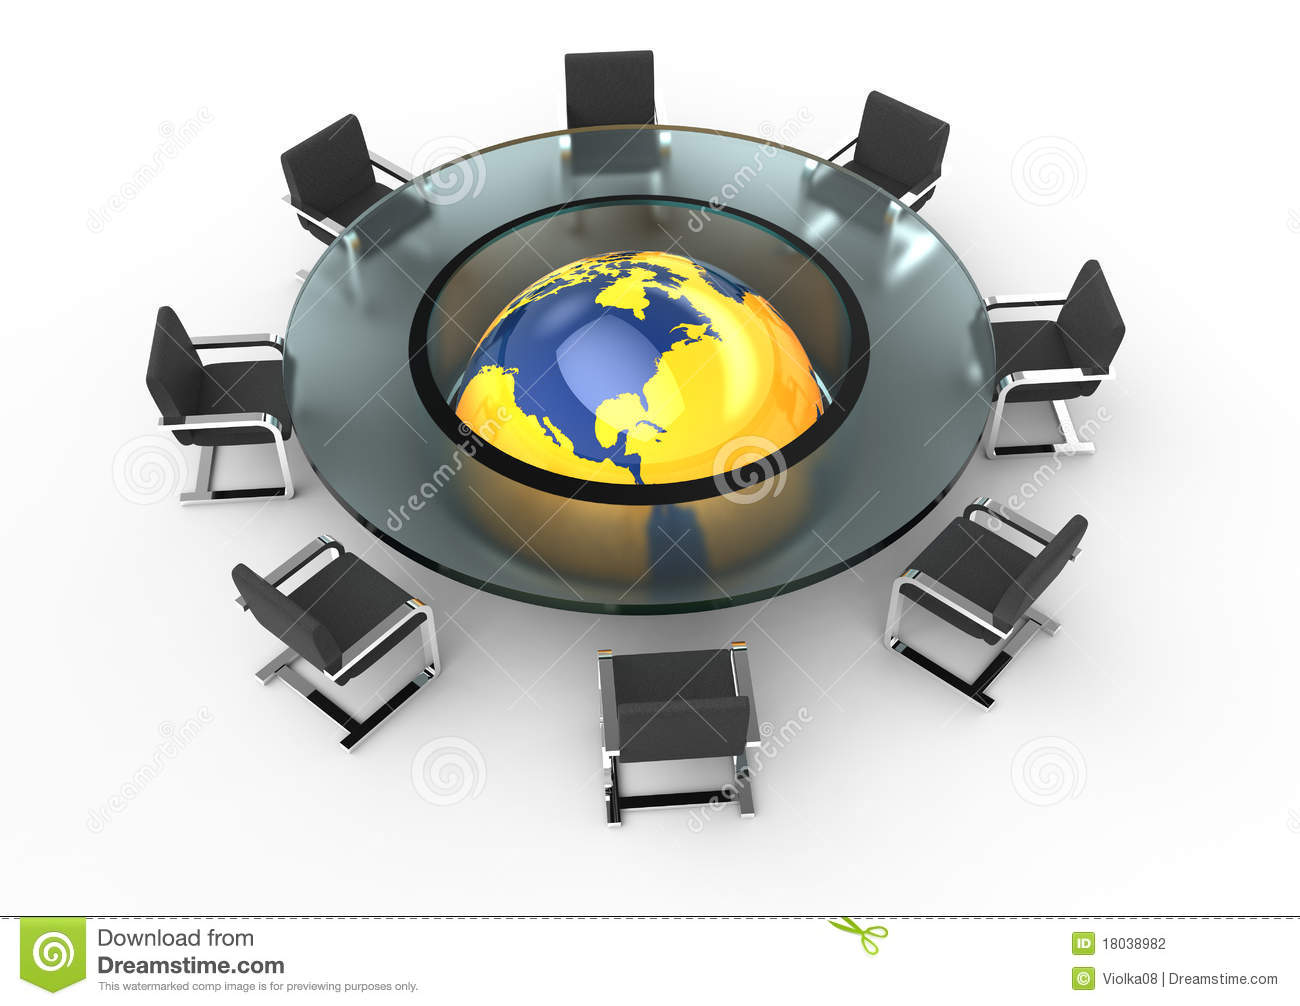 Round Glass Conference Table Stock Illustration Illustration Of - Round glass conference table